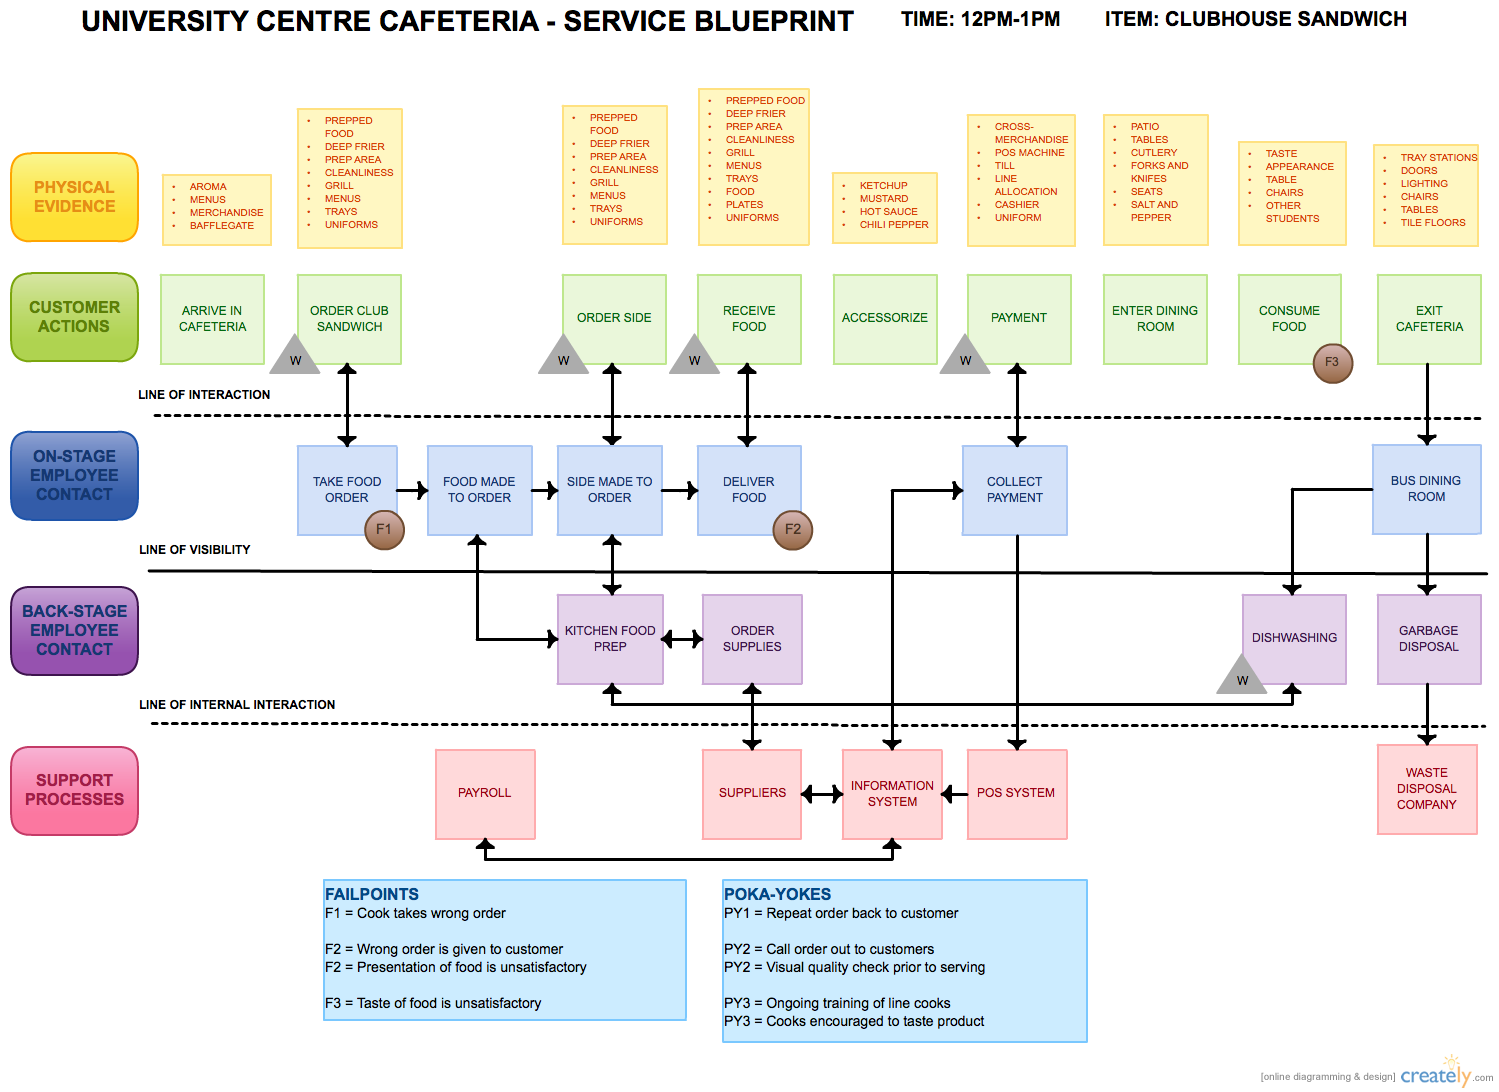 Service blueprint diagram application wiring diagram service blueprint service design pinterest block diagram rh pinterest ca pistol blueprints service blueprint diagram supermarket malvernweather Choice Image